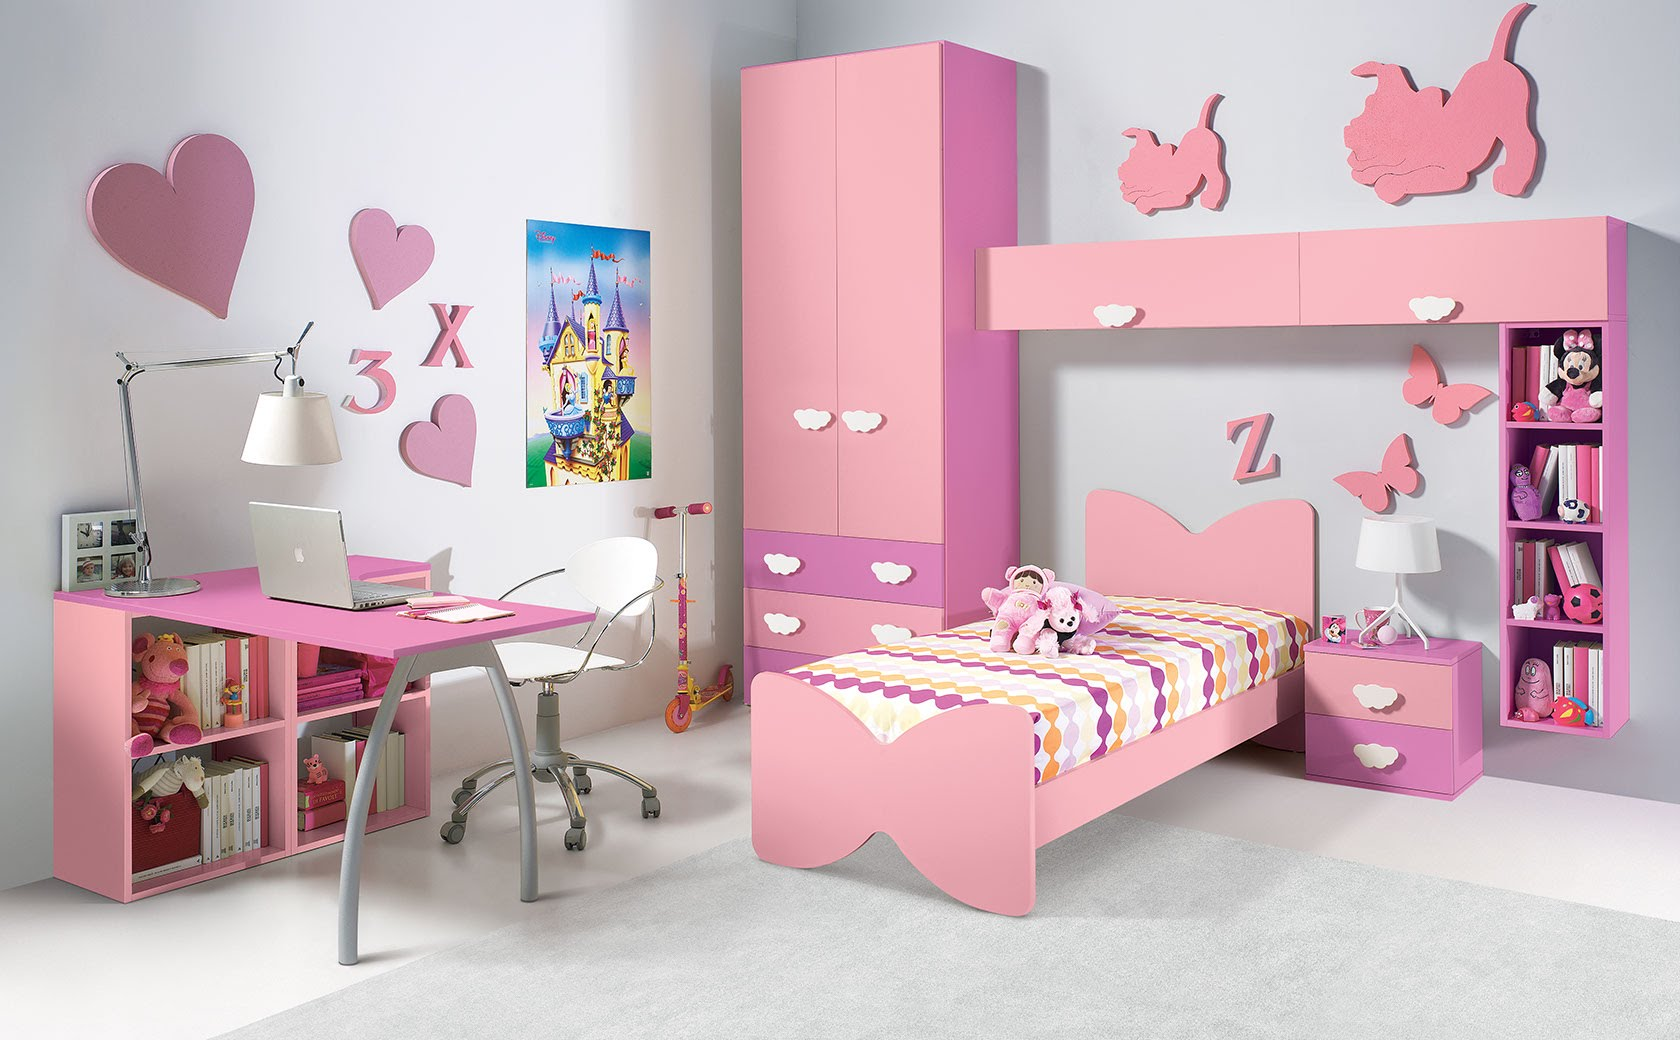 Top 10 kids furniture stores in singapore Best kids bedroom furniture